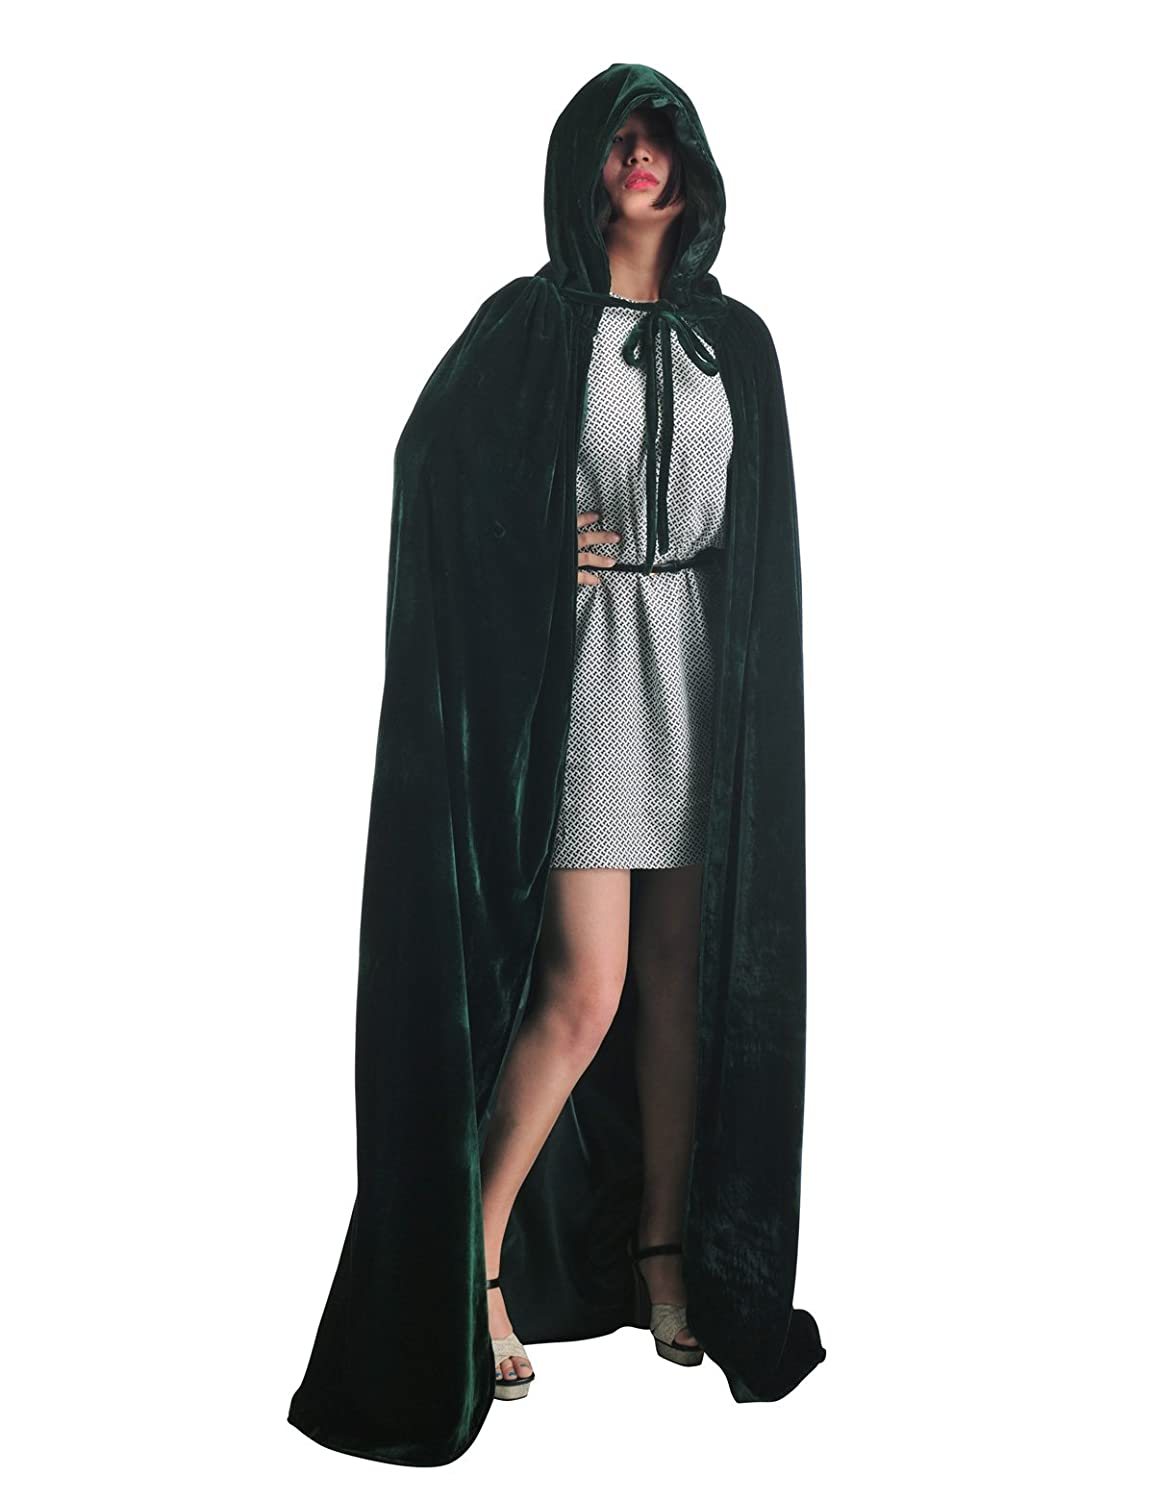 Topwedding Christmas Deluxe Hooded Cloak Adult Halloween Costumes Capes(S-XXL) lwpj140011